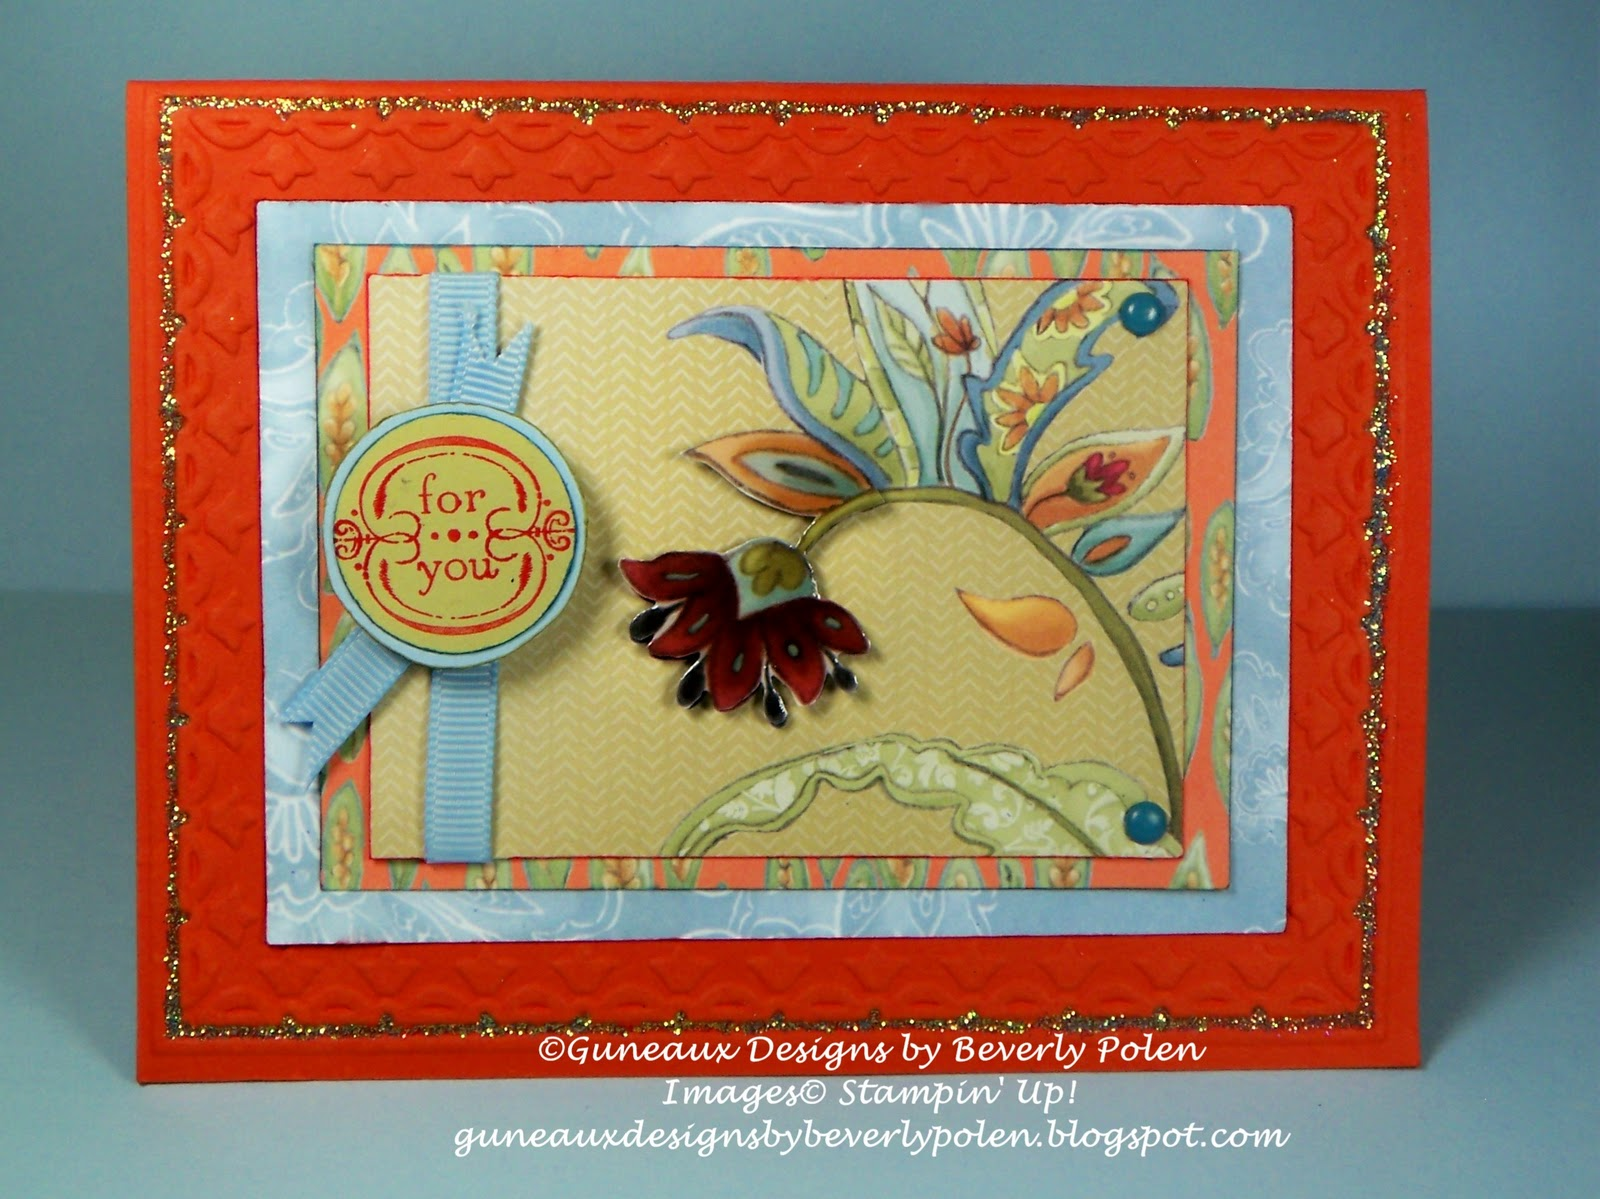 Guneaux designs by beverly polen greeting card idea stampin up to emphasize the beautiful light blue dsp i used stampin up glitter fine cosmo light blue around the border of the framed tulips embossing on the card m4hsunfo